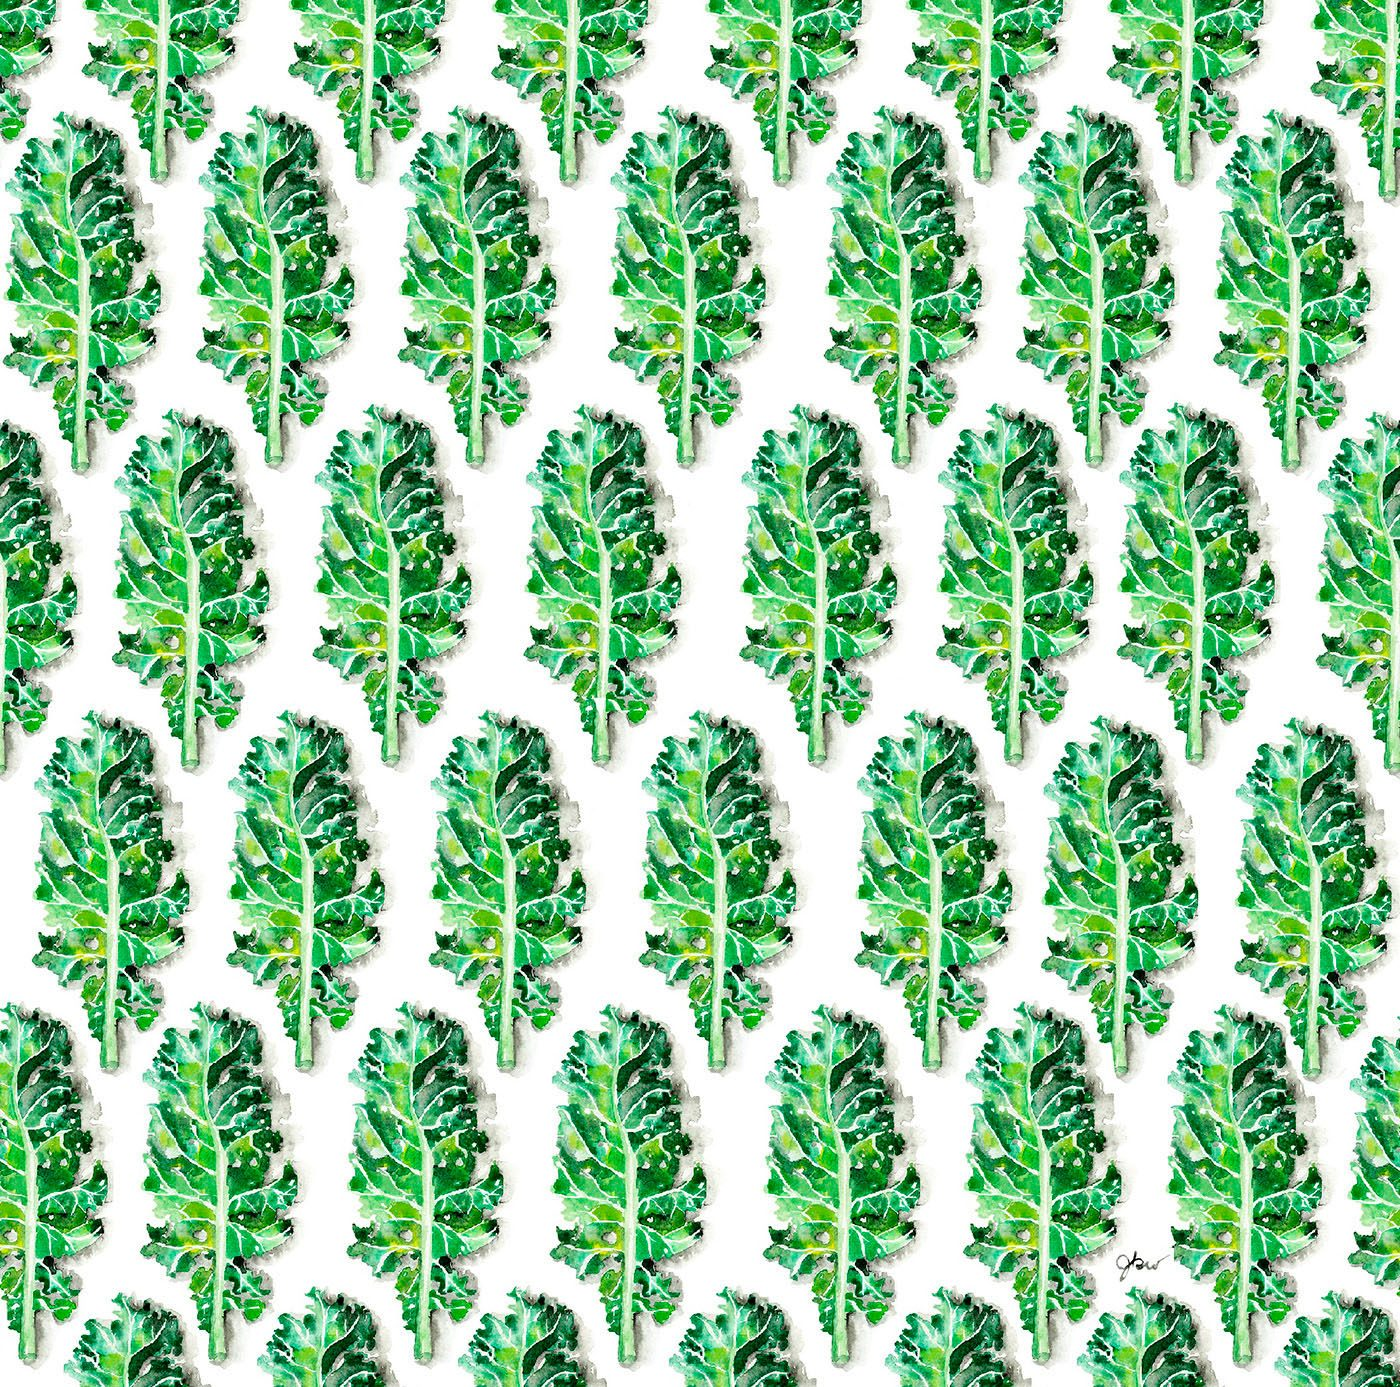 patterns_jessie-kanelos-weiner_kale-pattern-2